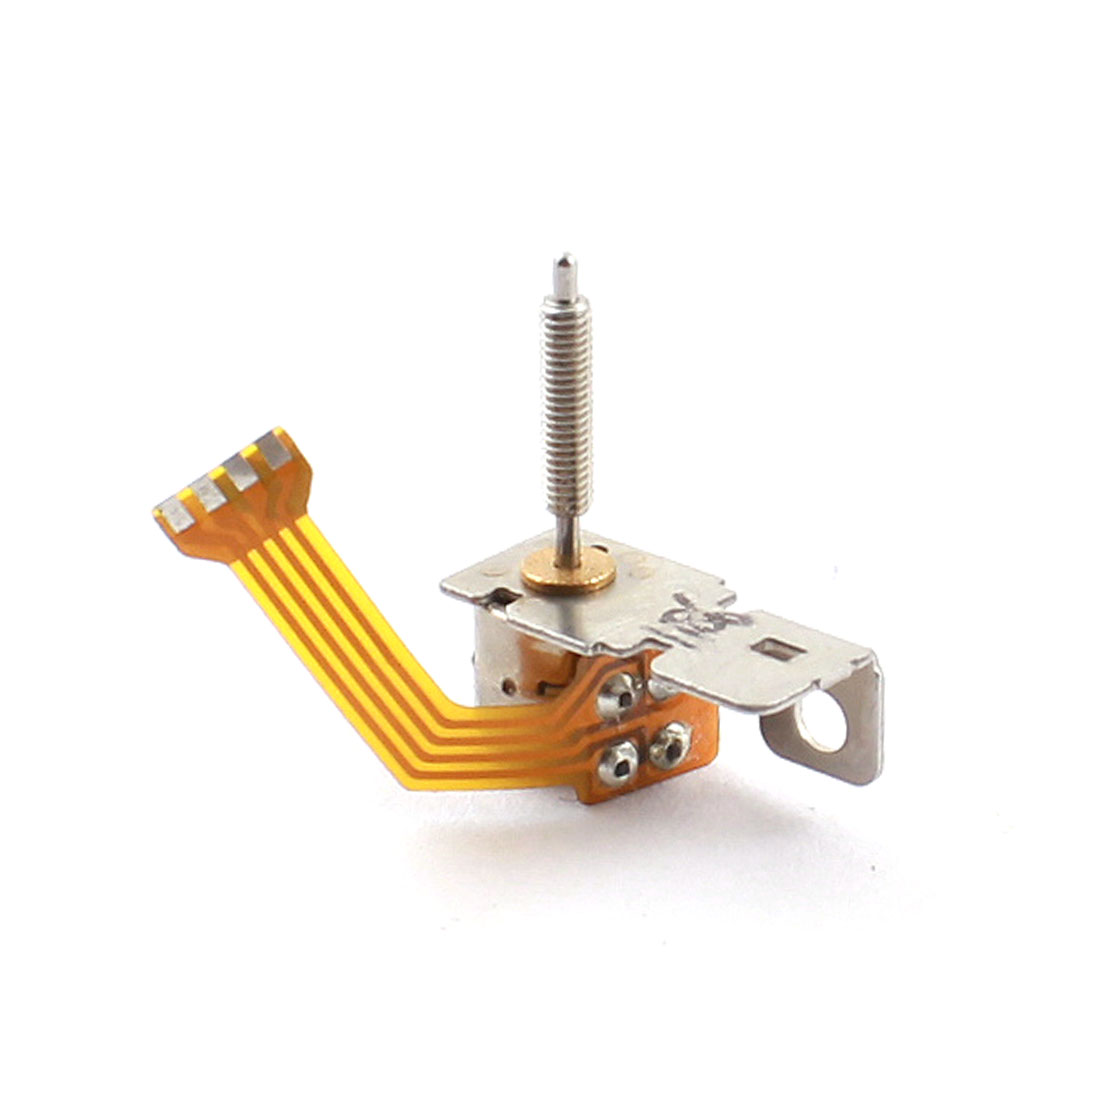 28000RPM DC 3.5V 0.3mA Output Speed 2mmx11mm Screw Pole Micro Stepper Motor